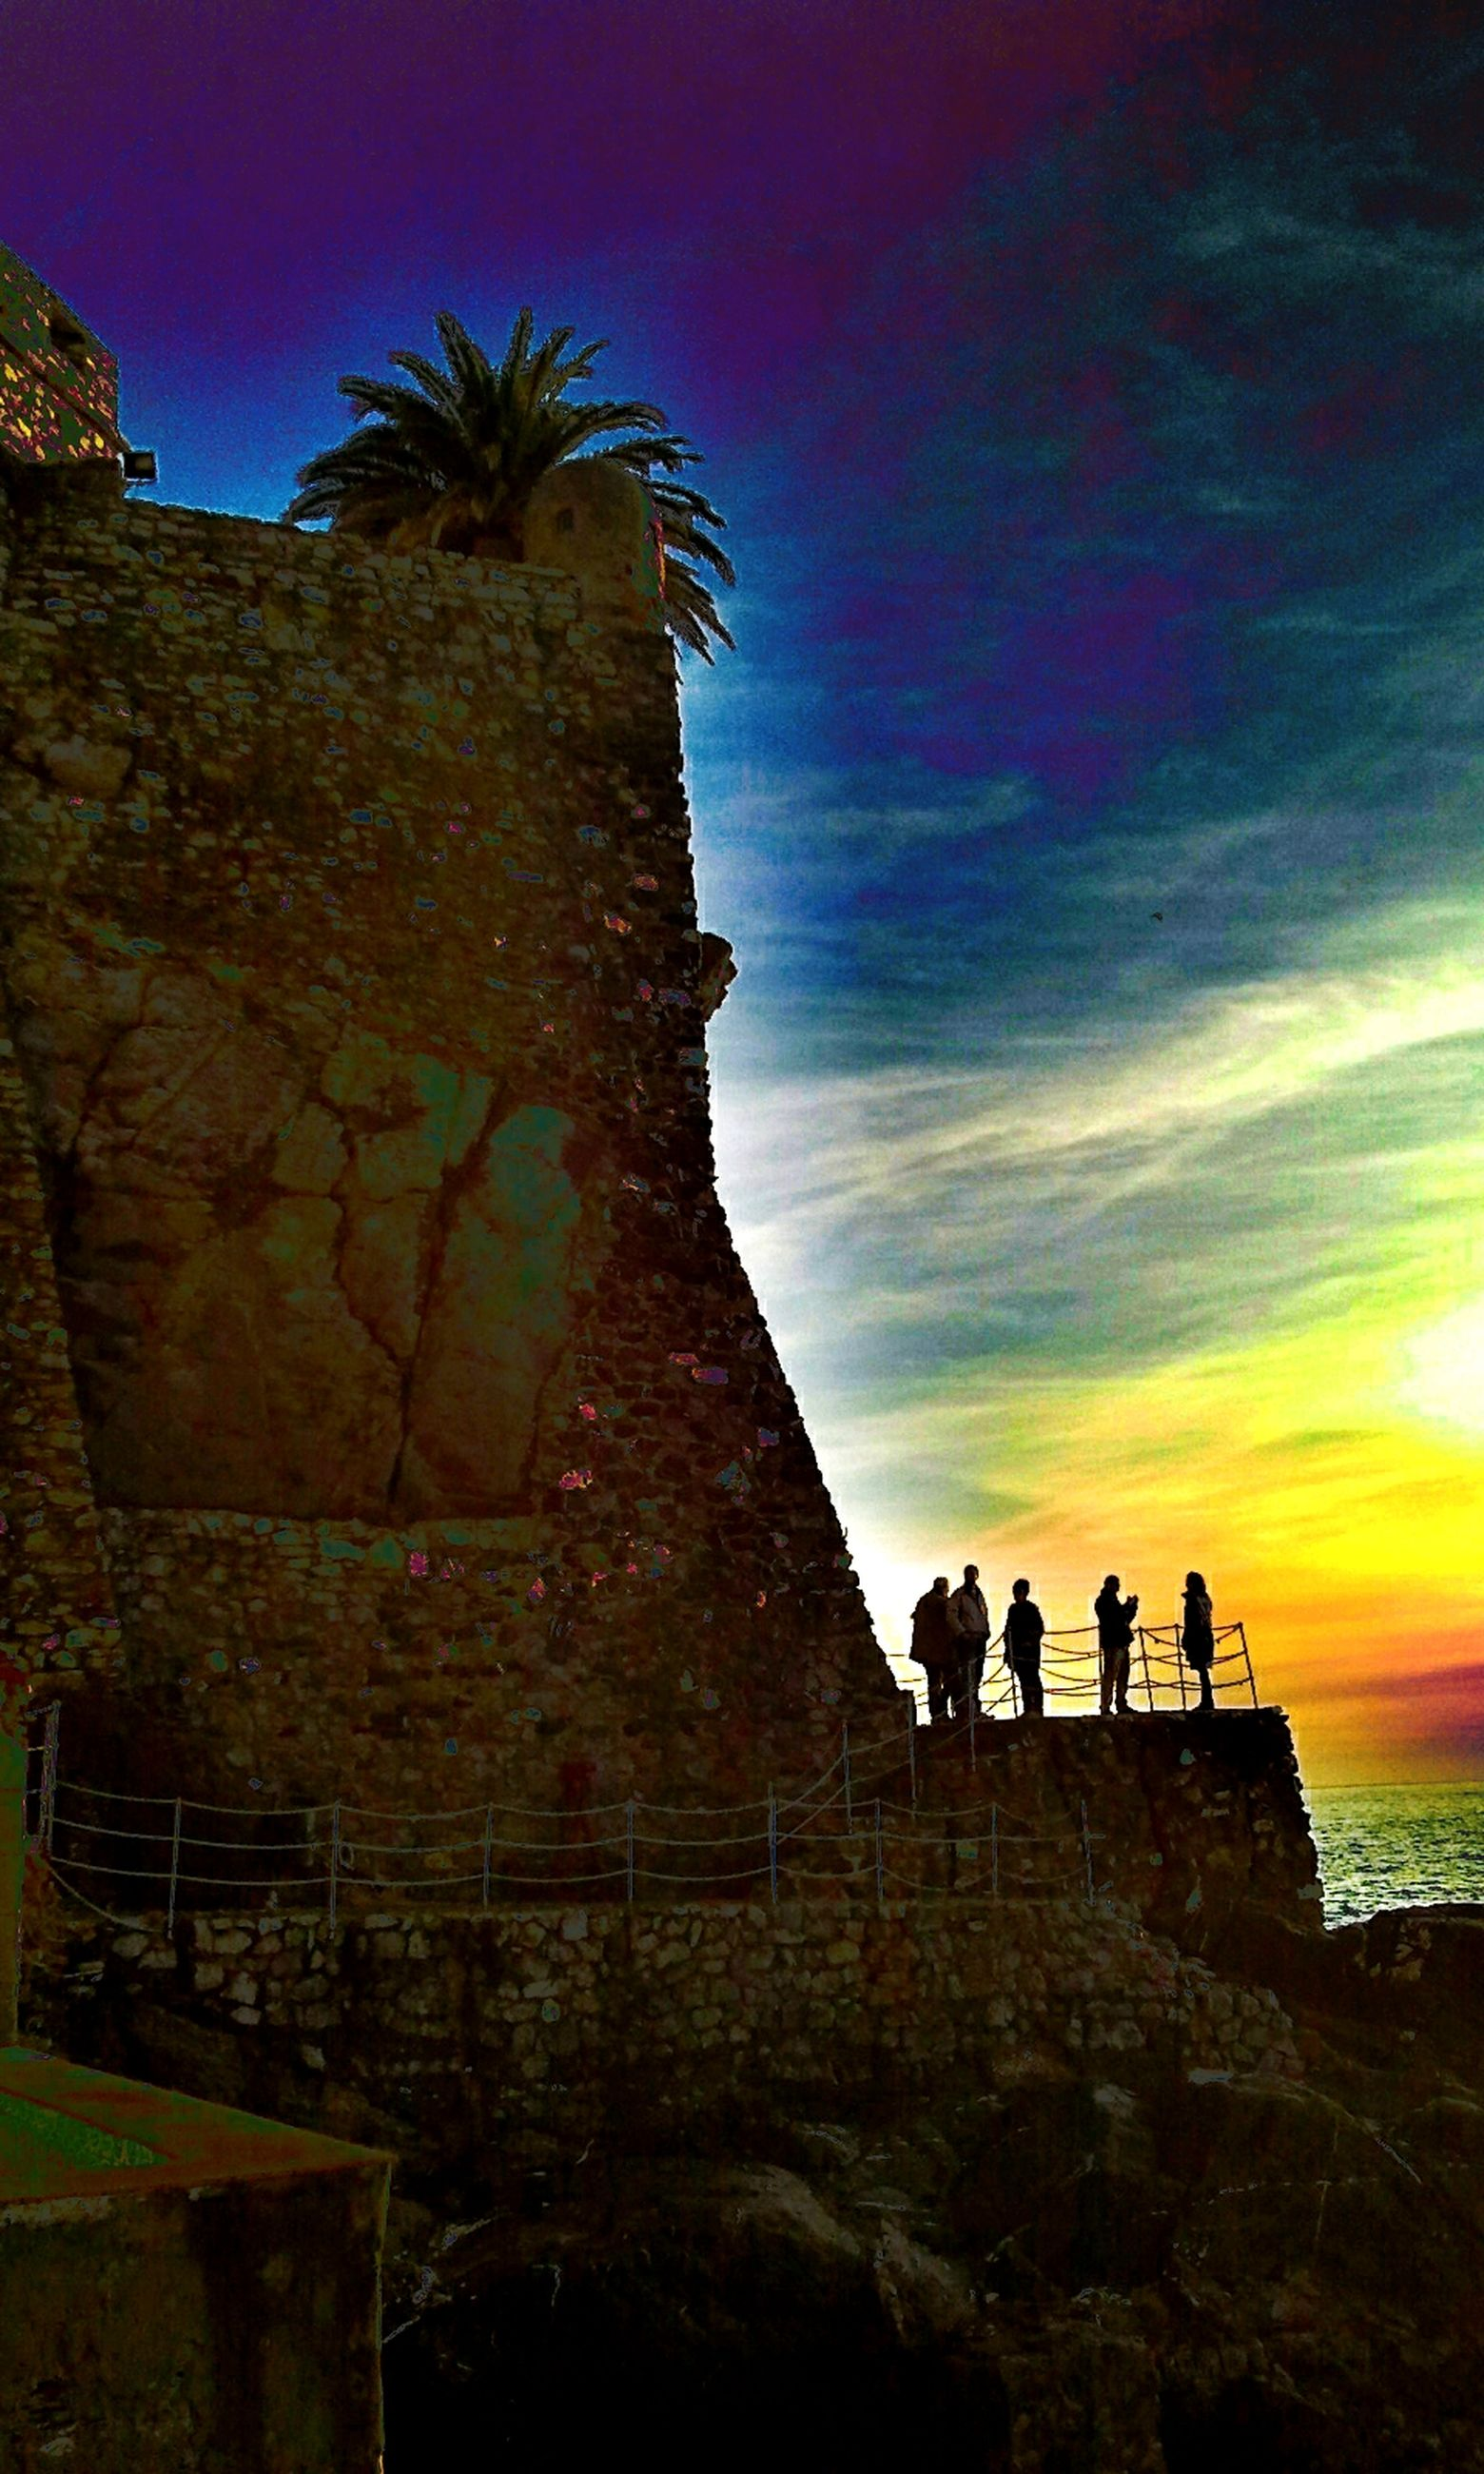 silhouette, sky, sunset, lifestyles, men, leisure activity, rock - object, rock formation, person, tranquility, nature, beauty in nature, tranquil scene, tree, tourist, low angle view, scenics, tourism